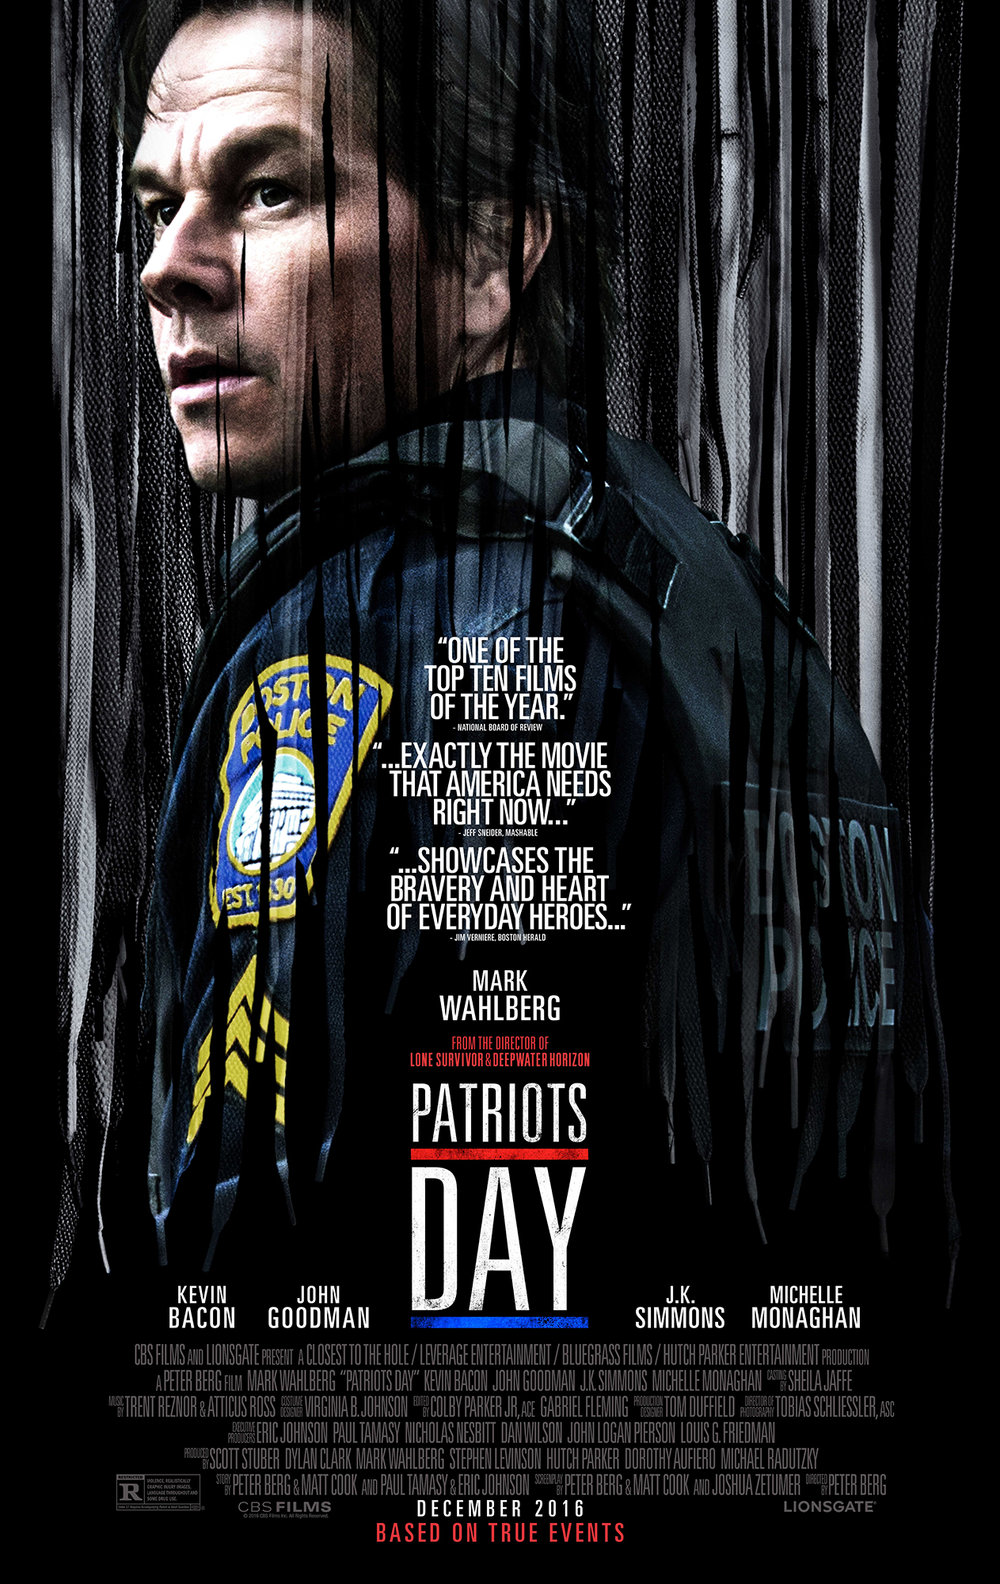 PatriotsDay_1Sht_Payoff_crop_100dpi.jpg